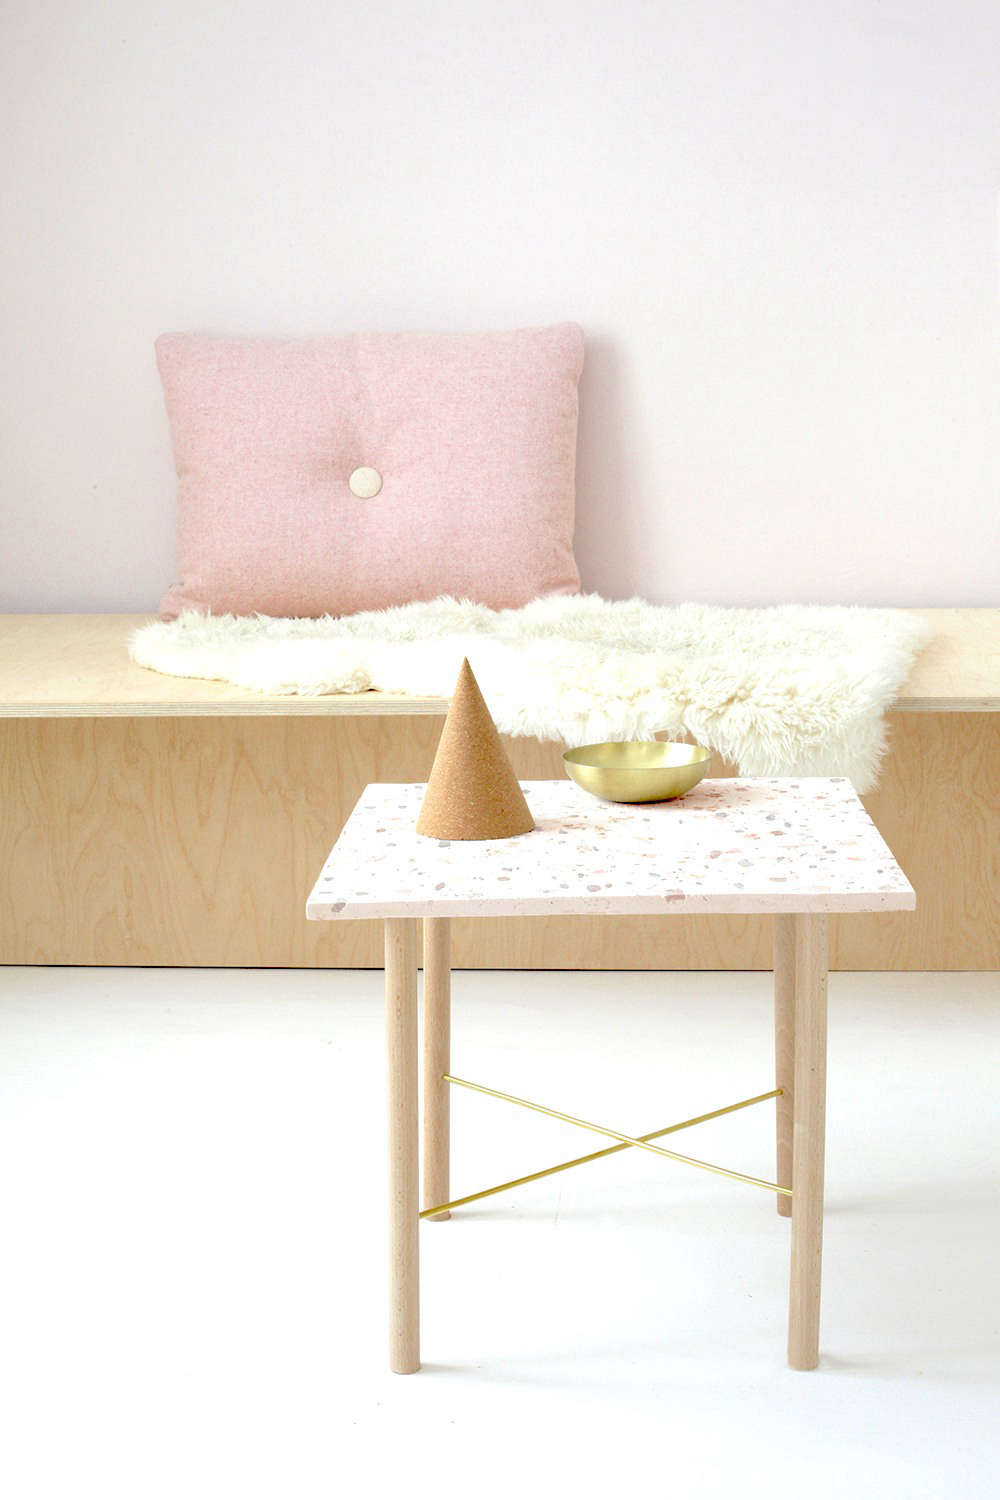 Perfect for use as a coffee table or side table, the design is entirely DIY, including the wood-and-brass base.